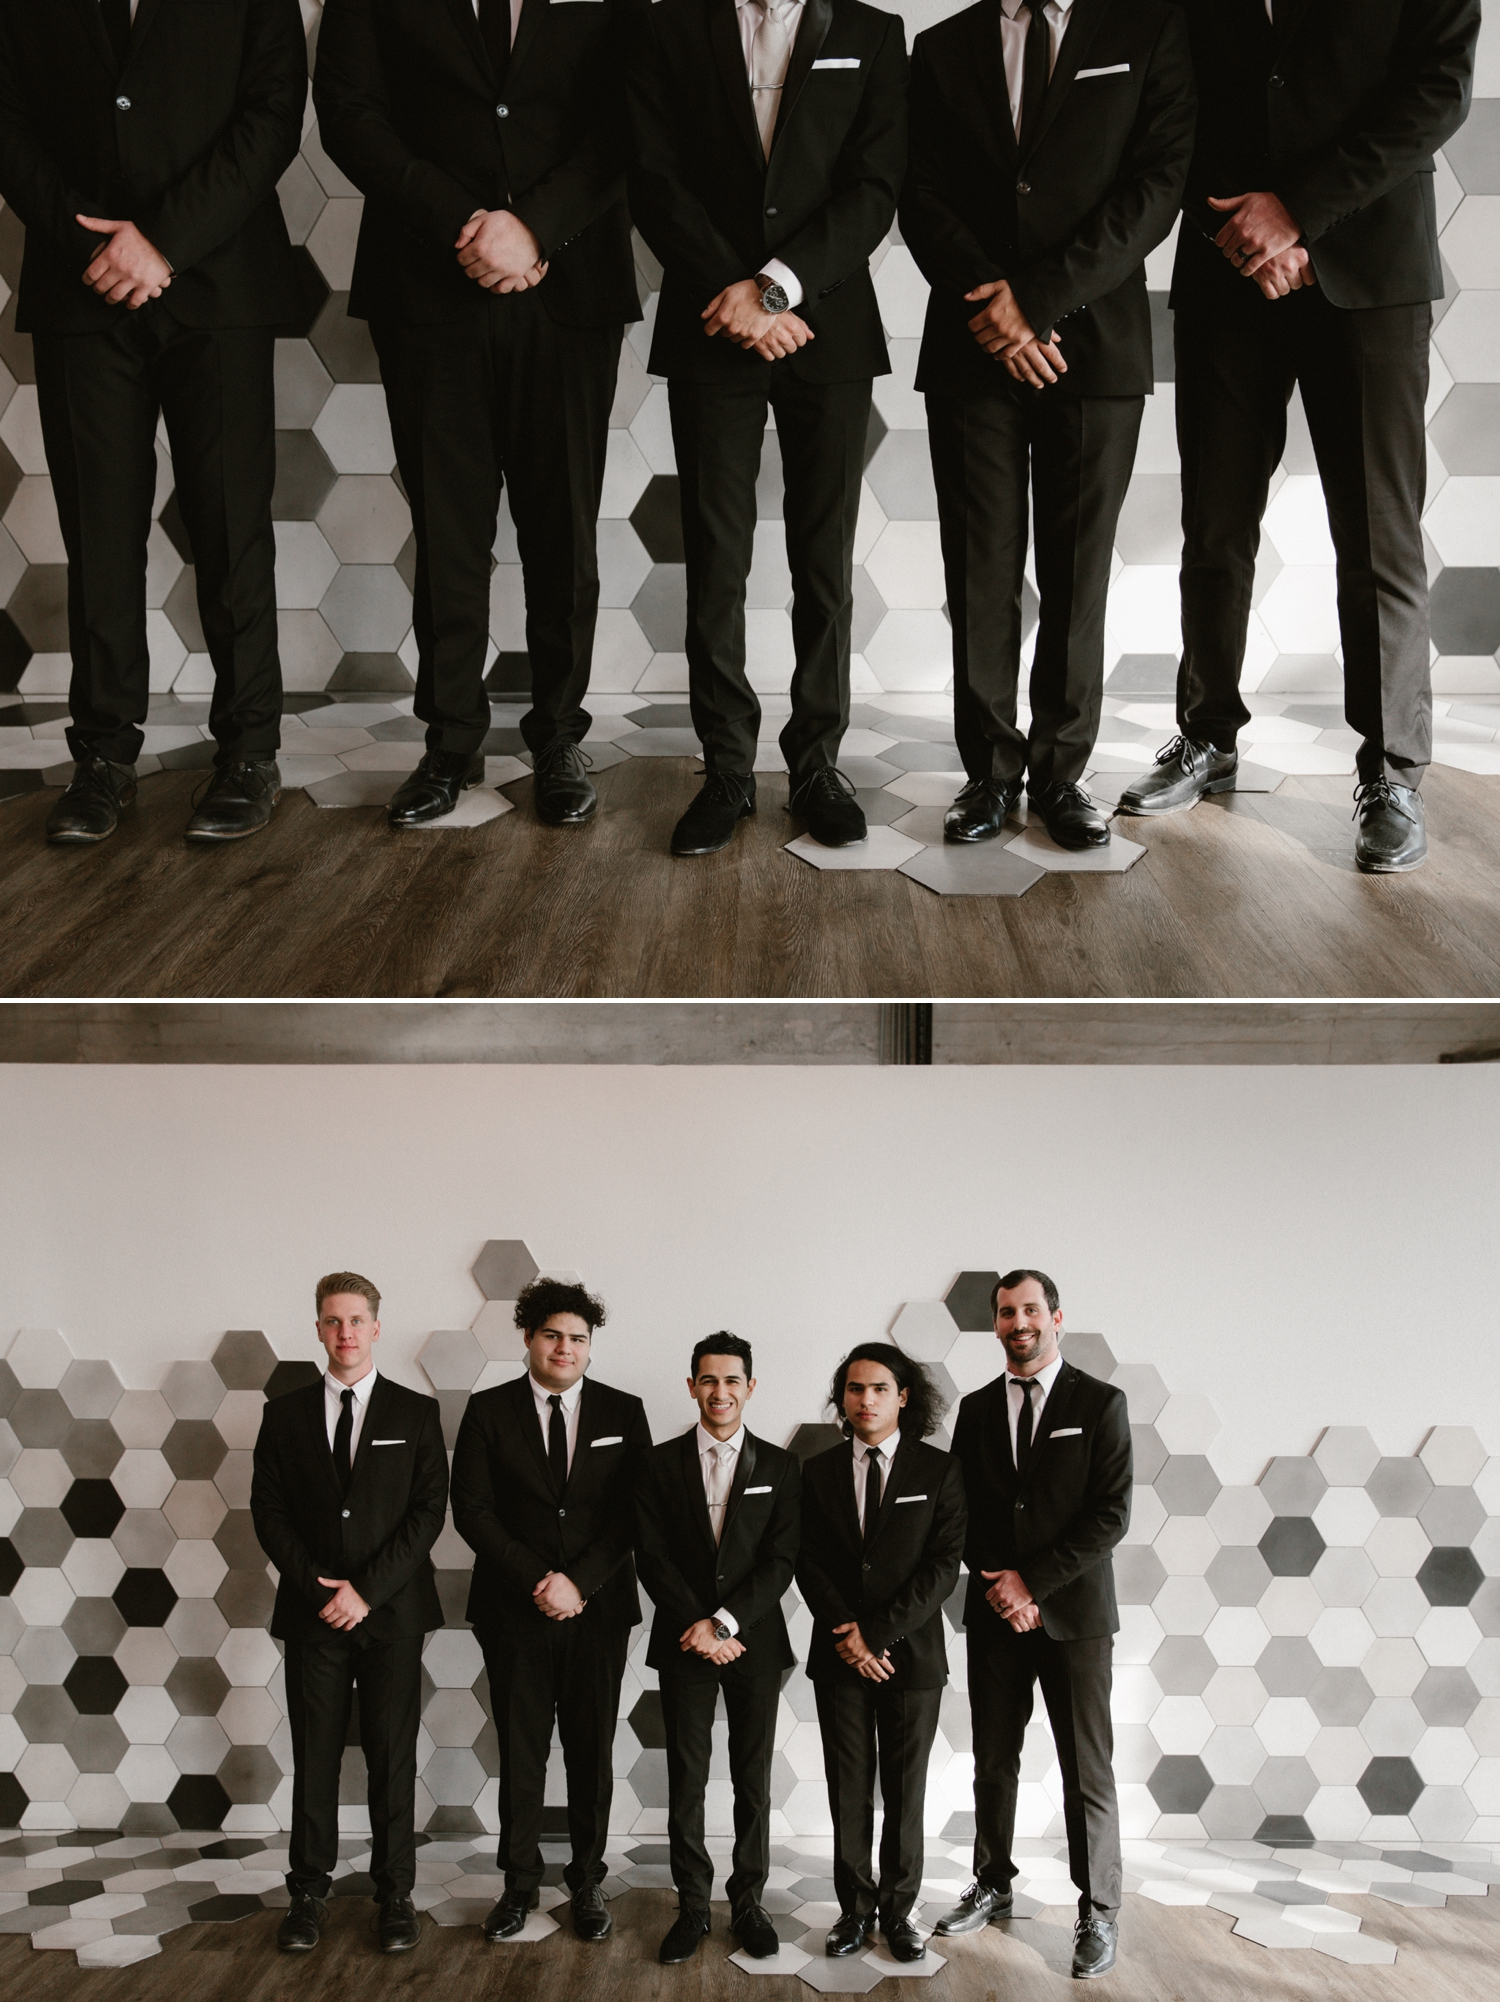 Groomsmen at the 1912 wedding in Santa Ana by Paige Nelson